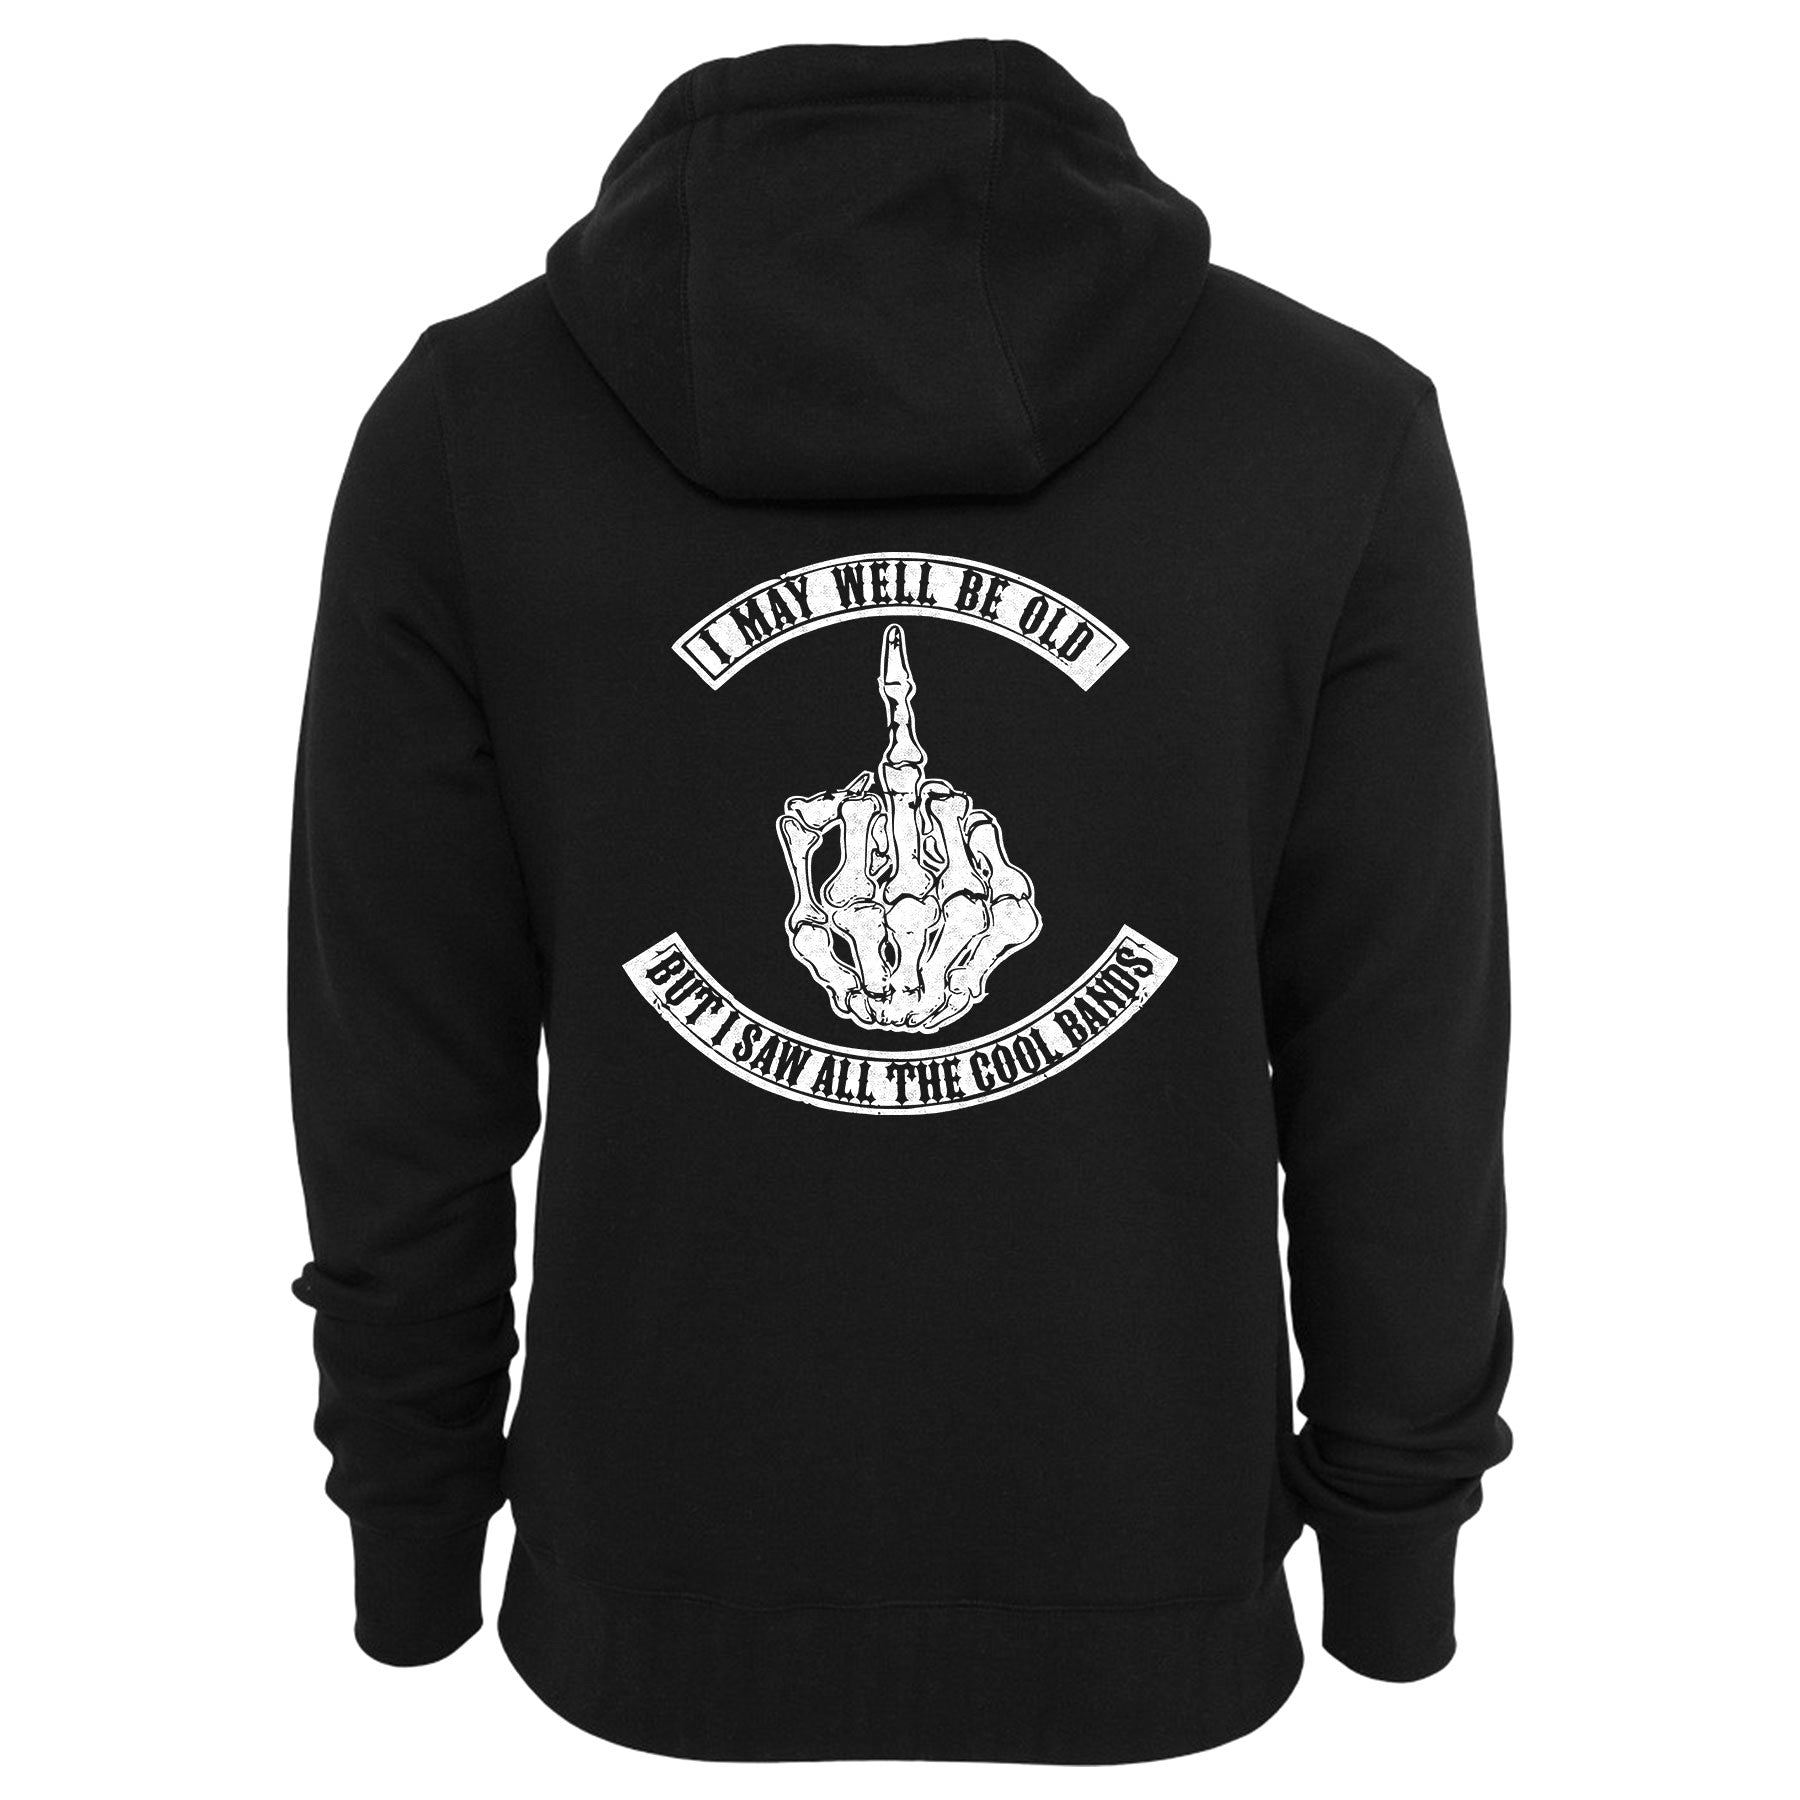 I MAY BE OLD But I Saw All The Cool Bands Hoodie – eightbittees